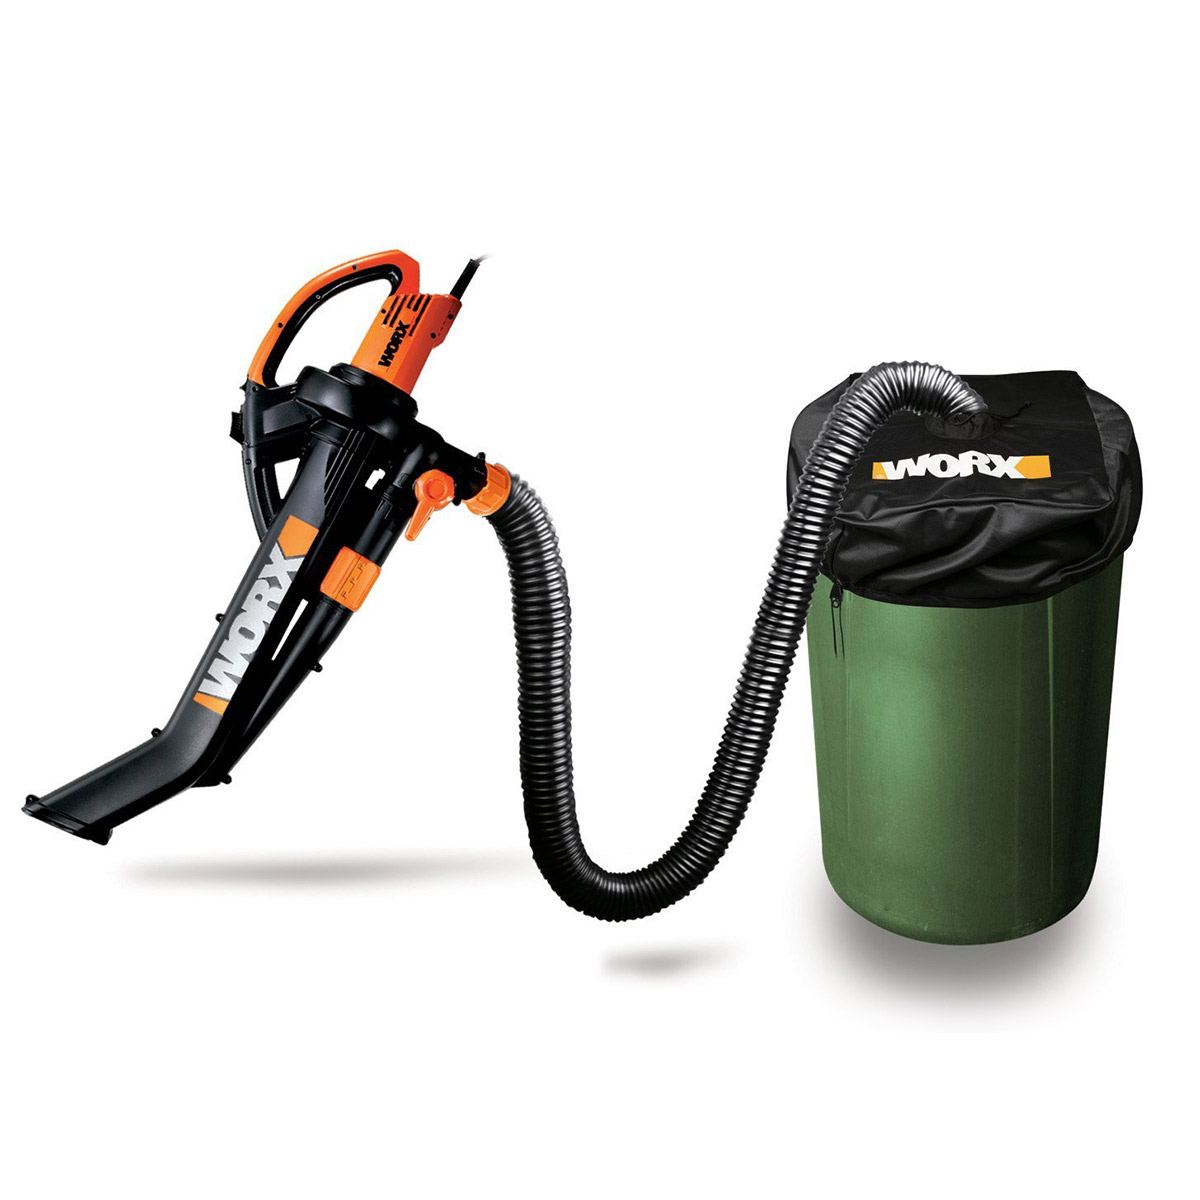 WORX TriVac Blower / Mulcher/ Yard Vacuum with Leaf Collection #BC530F